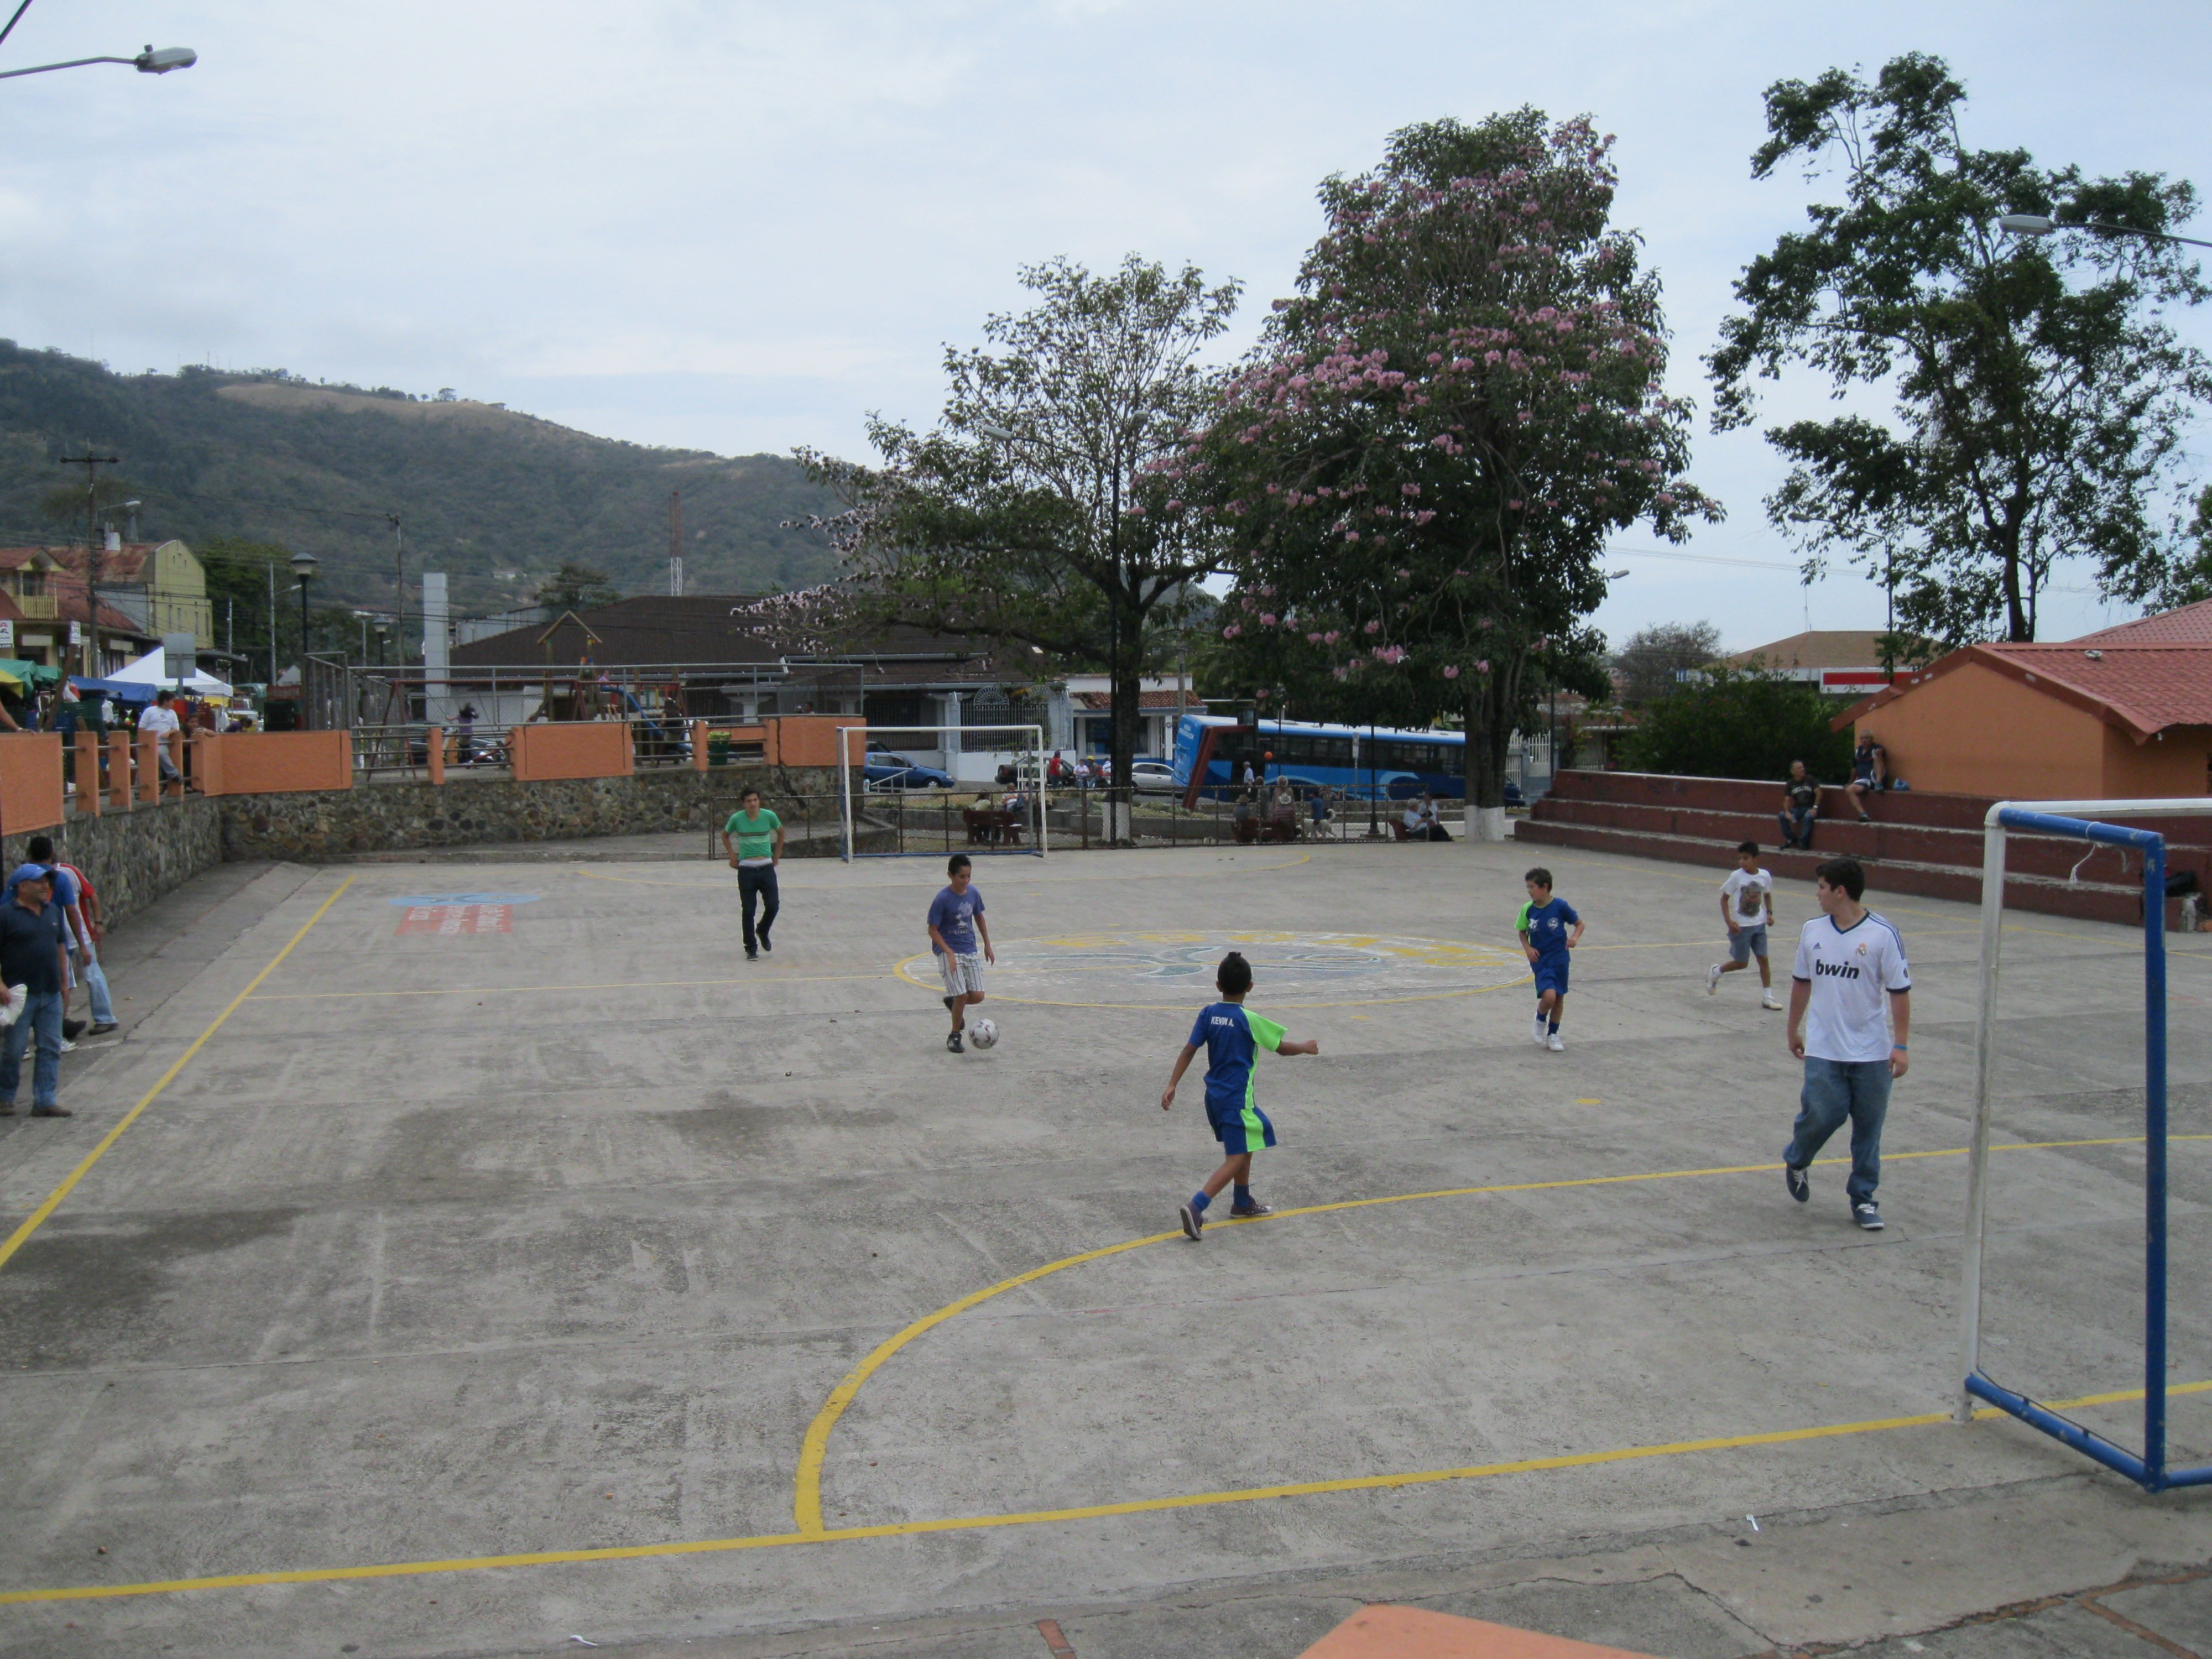 Soccer, known in Costa Rica as futbol, is not just the most popular sport in the country – it's a way of life. People of all ages play and every town has its own field for friendly competition.